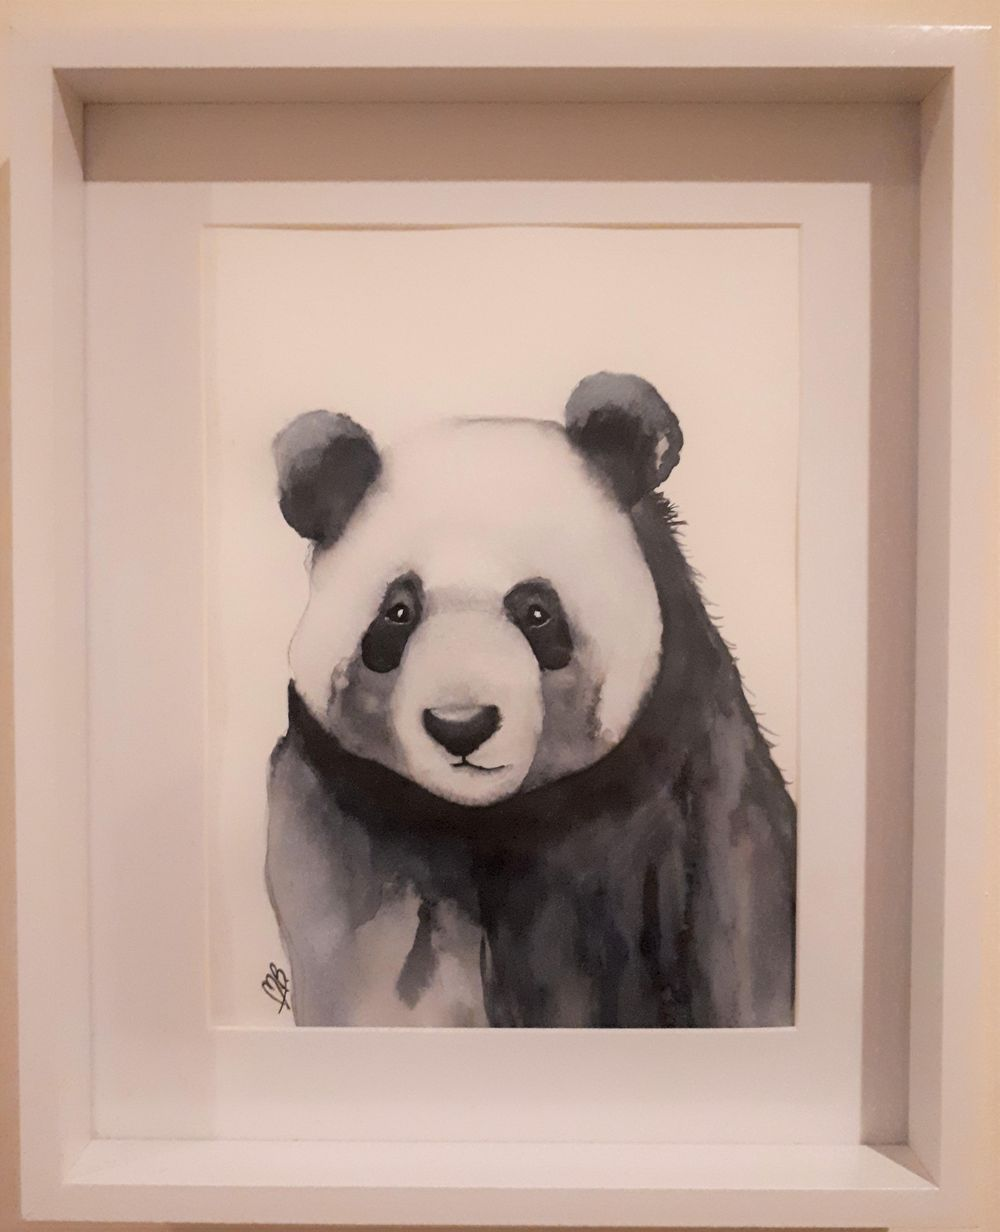 Little Panda Painting - image 1 - student project